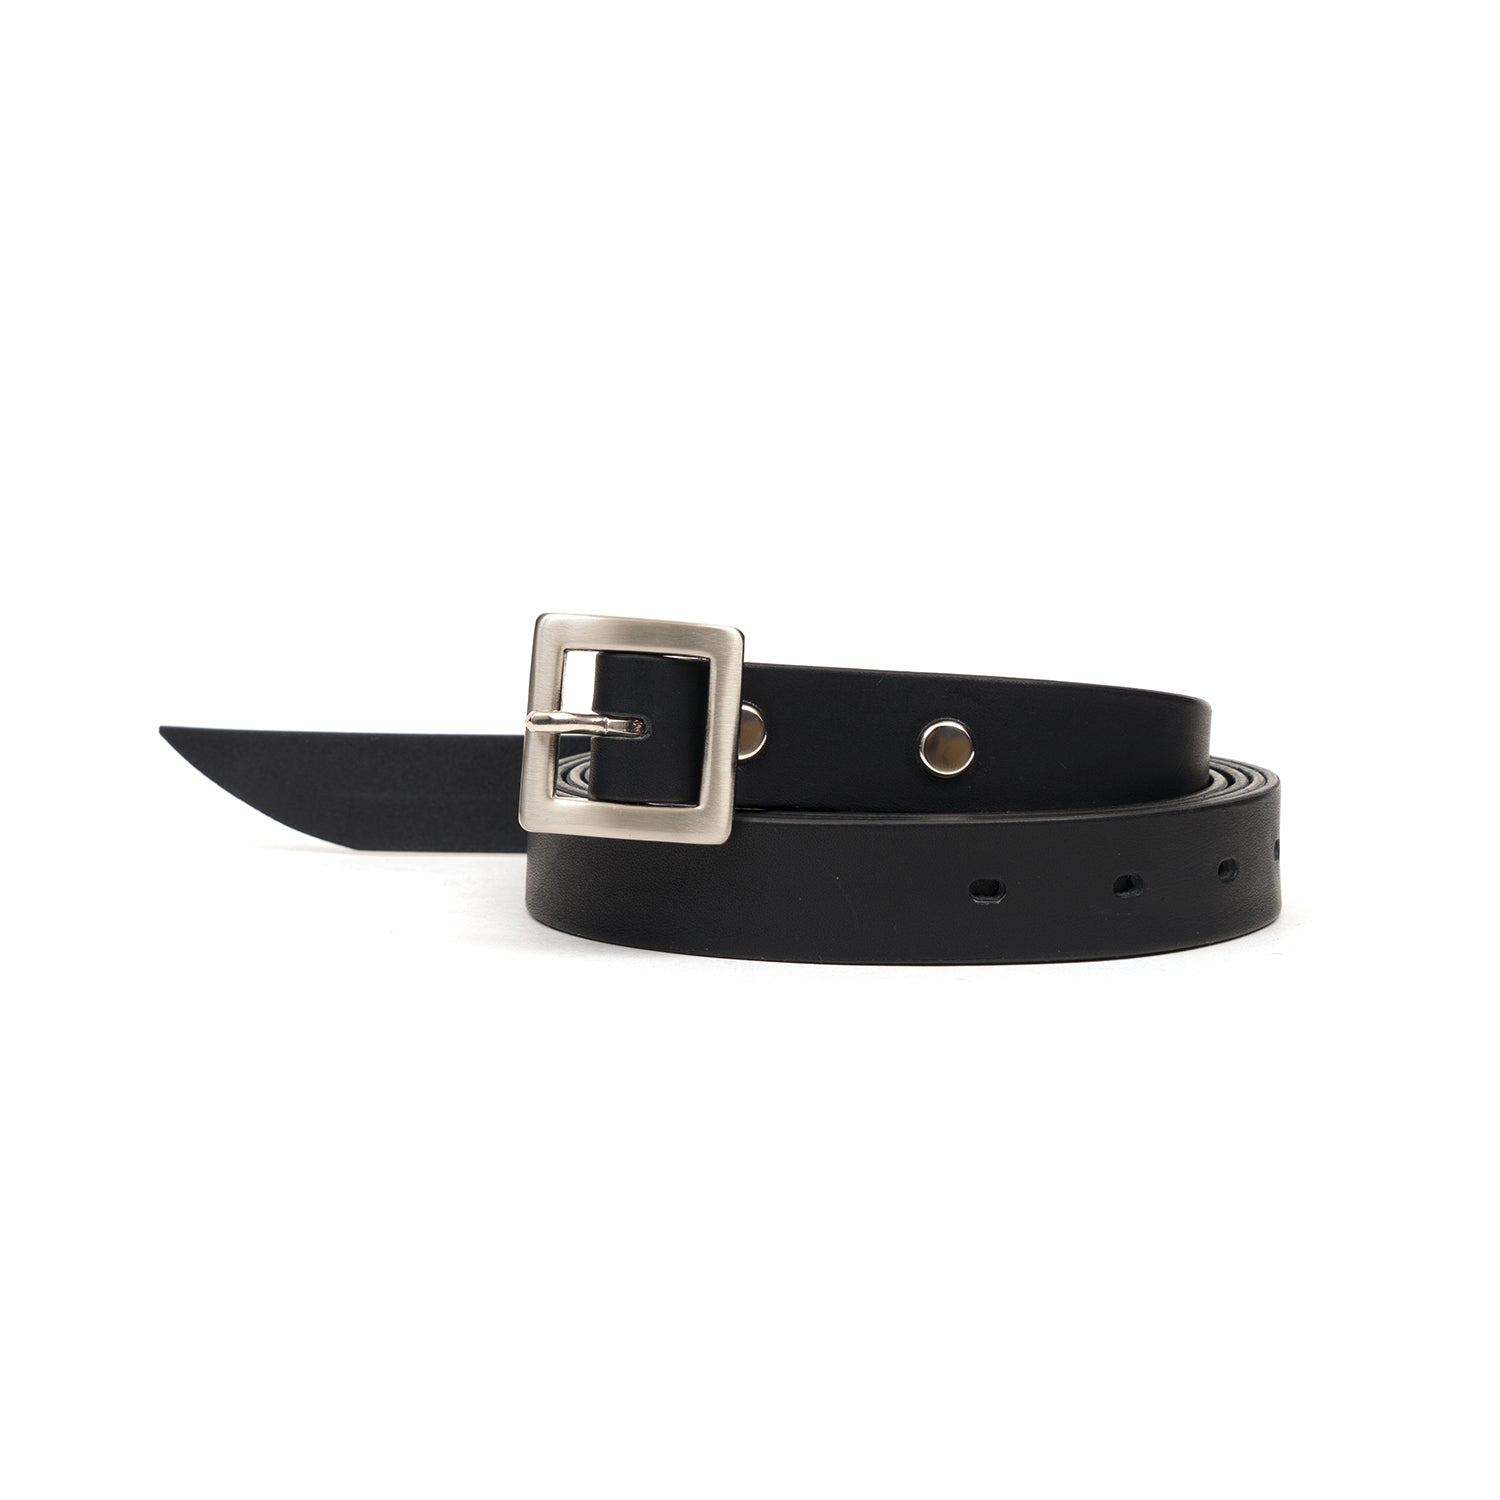 Bedwin 'Terry' Leather Belt Black